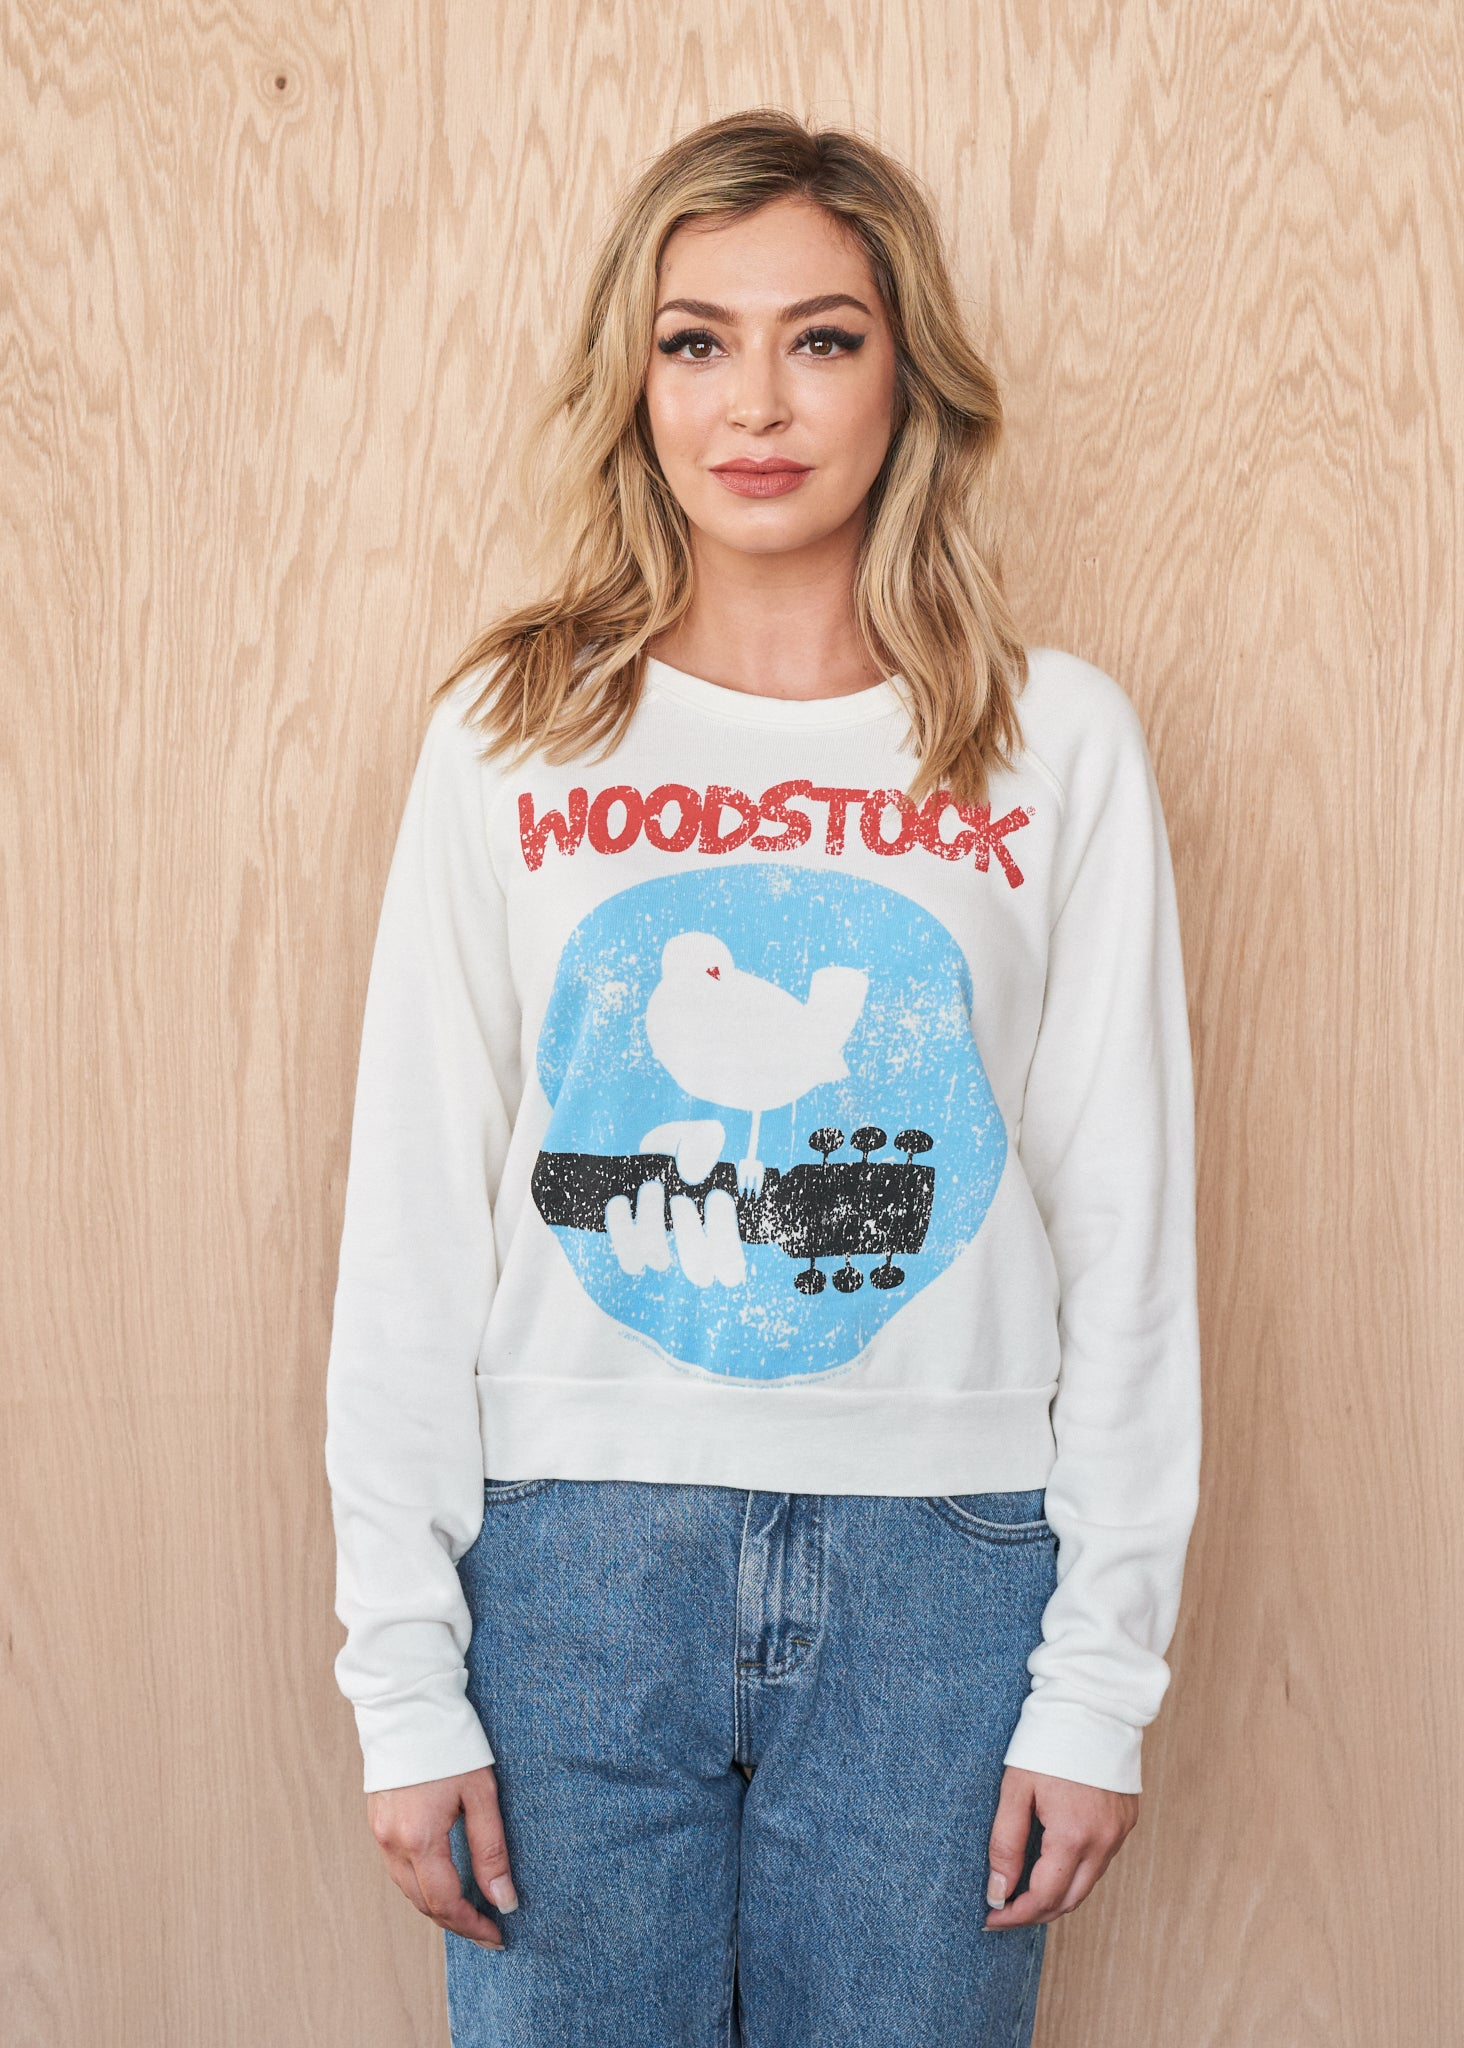 Woodstock Logo Women's Sweatshirt - Women's Sweatshirt - Midnight Rider